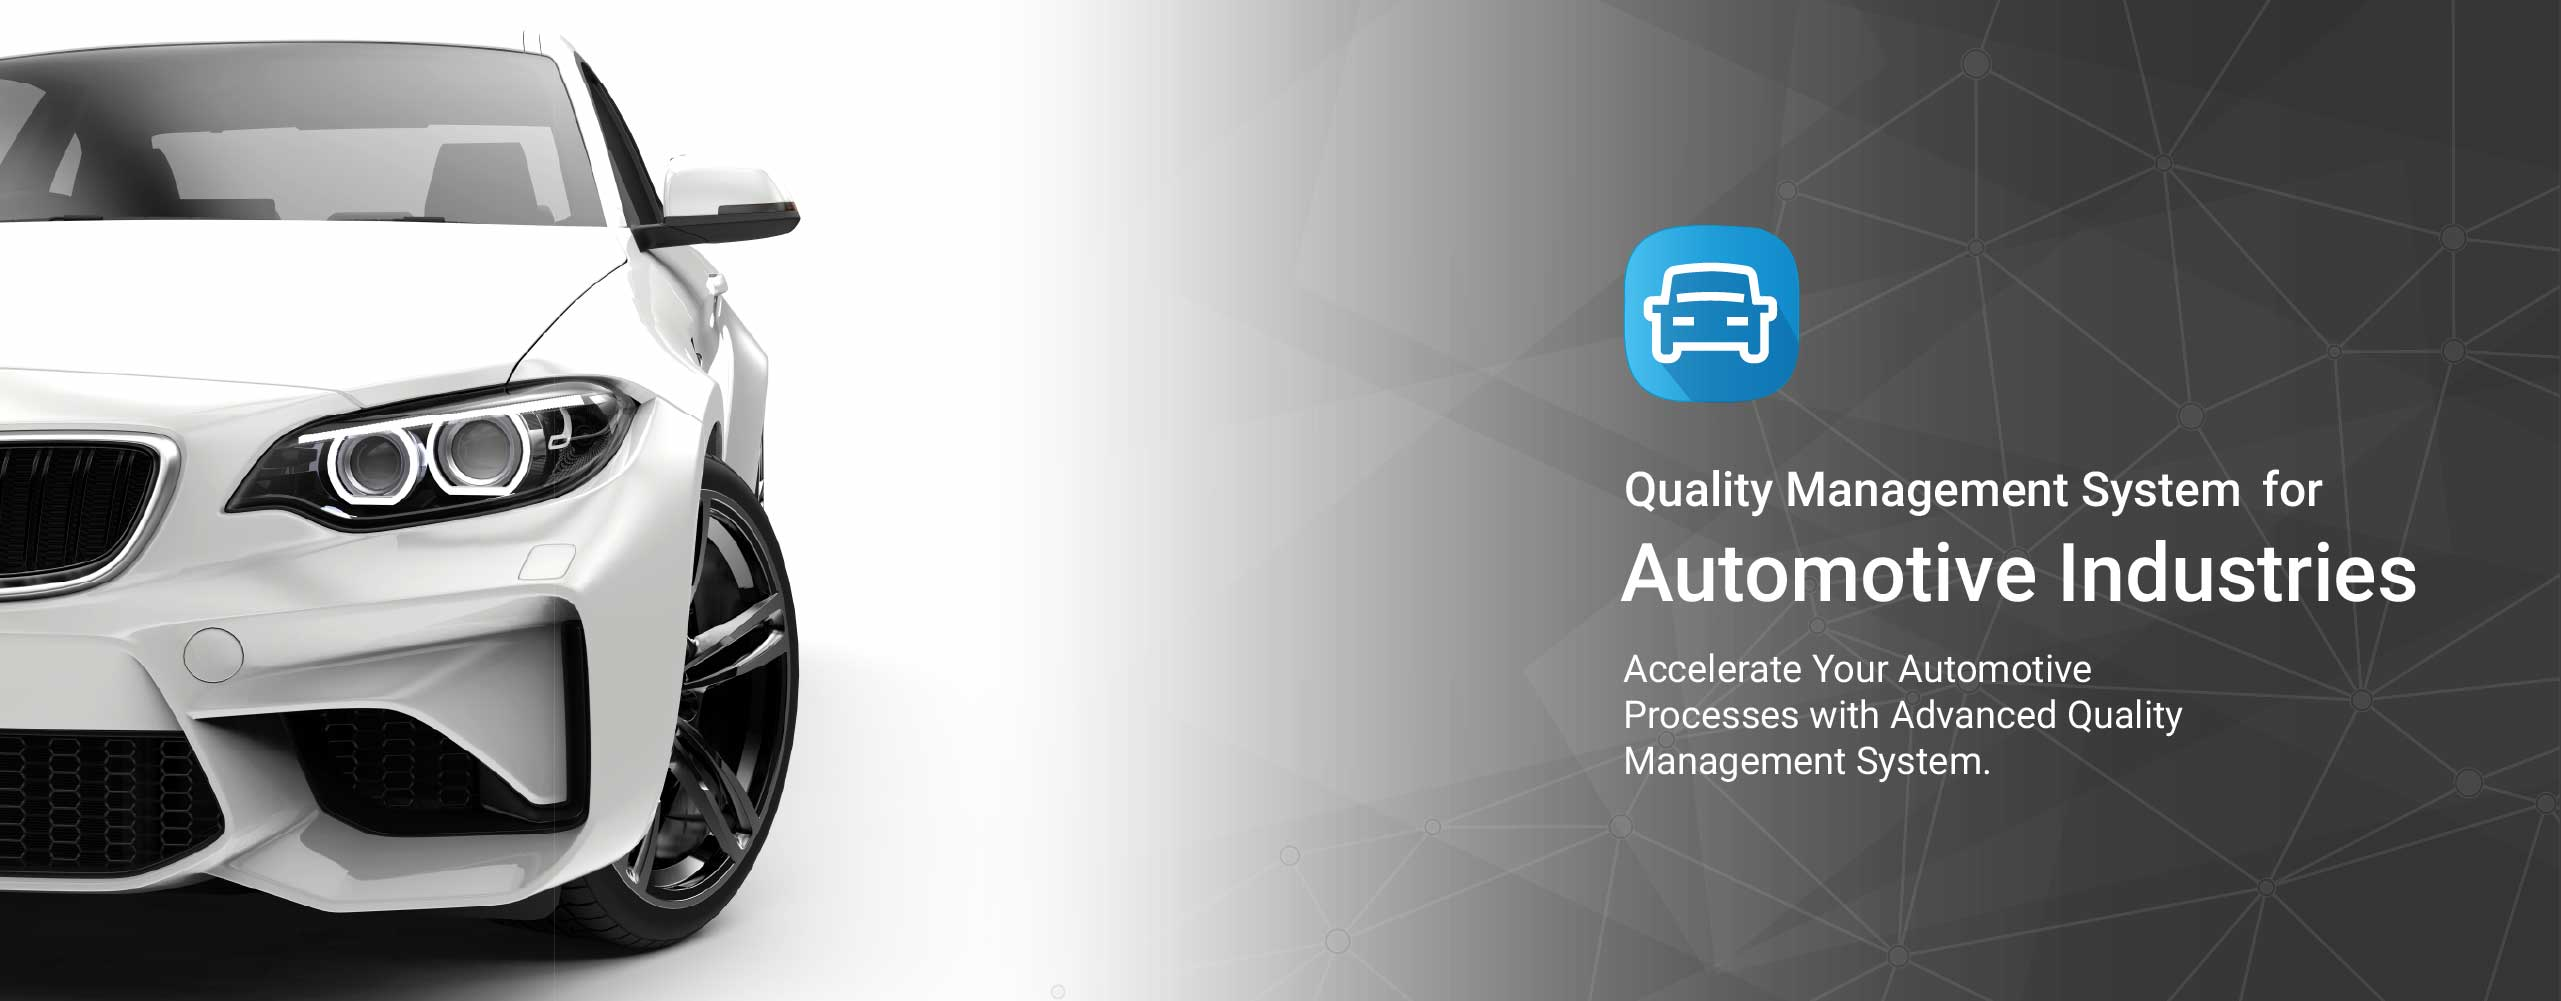 Quality Management System For Automotive Industry